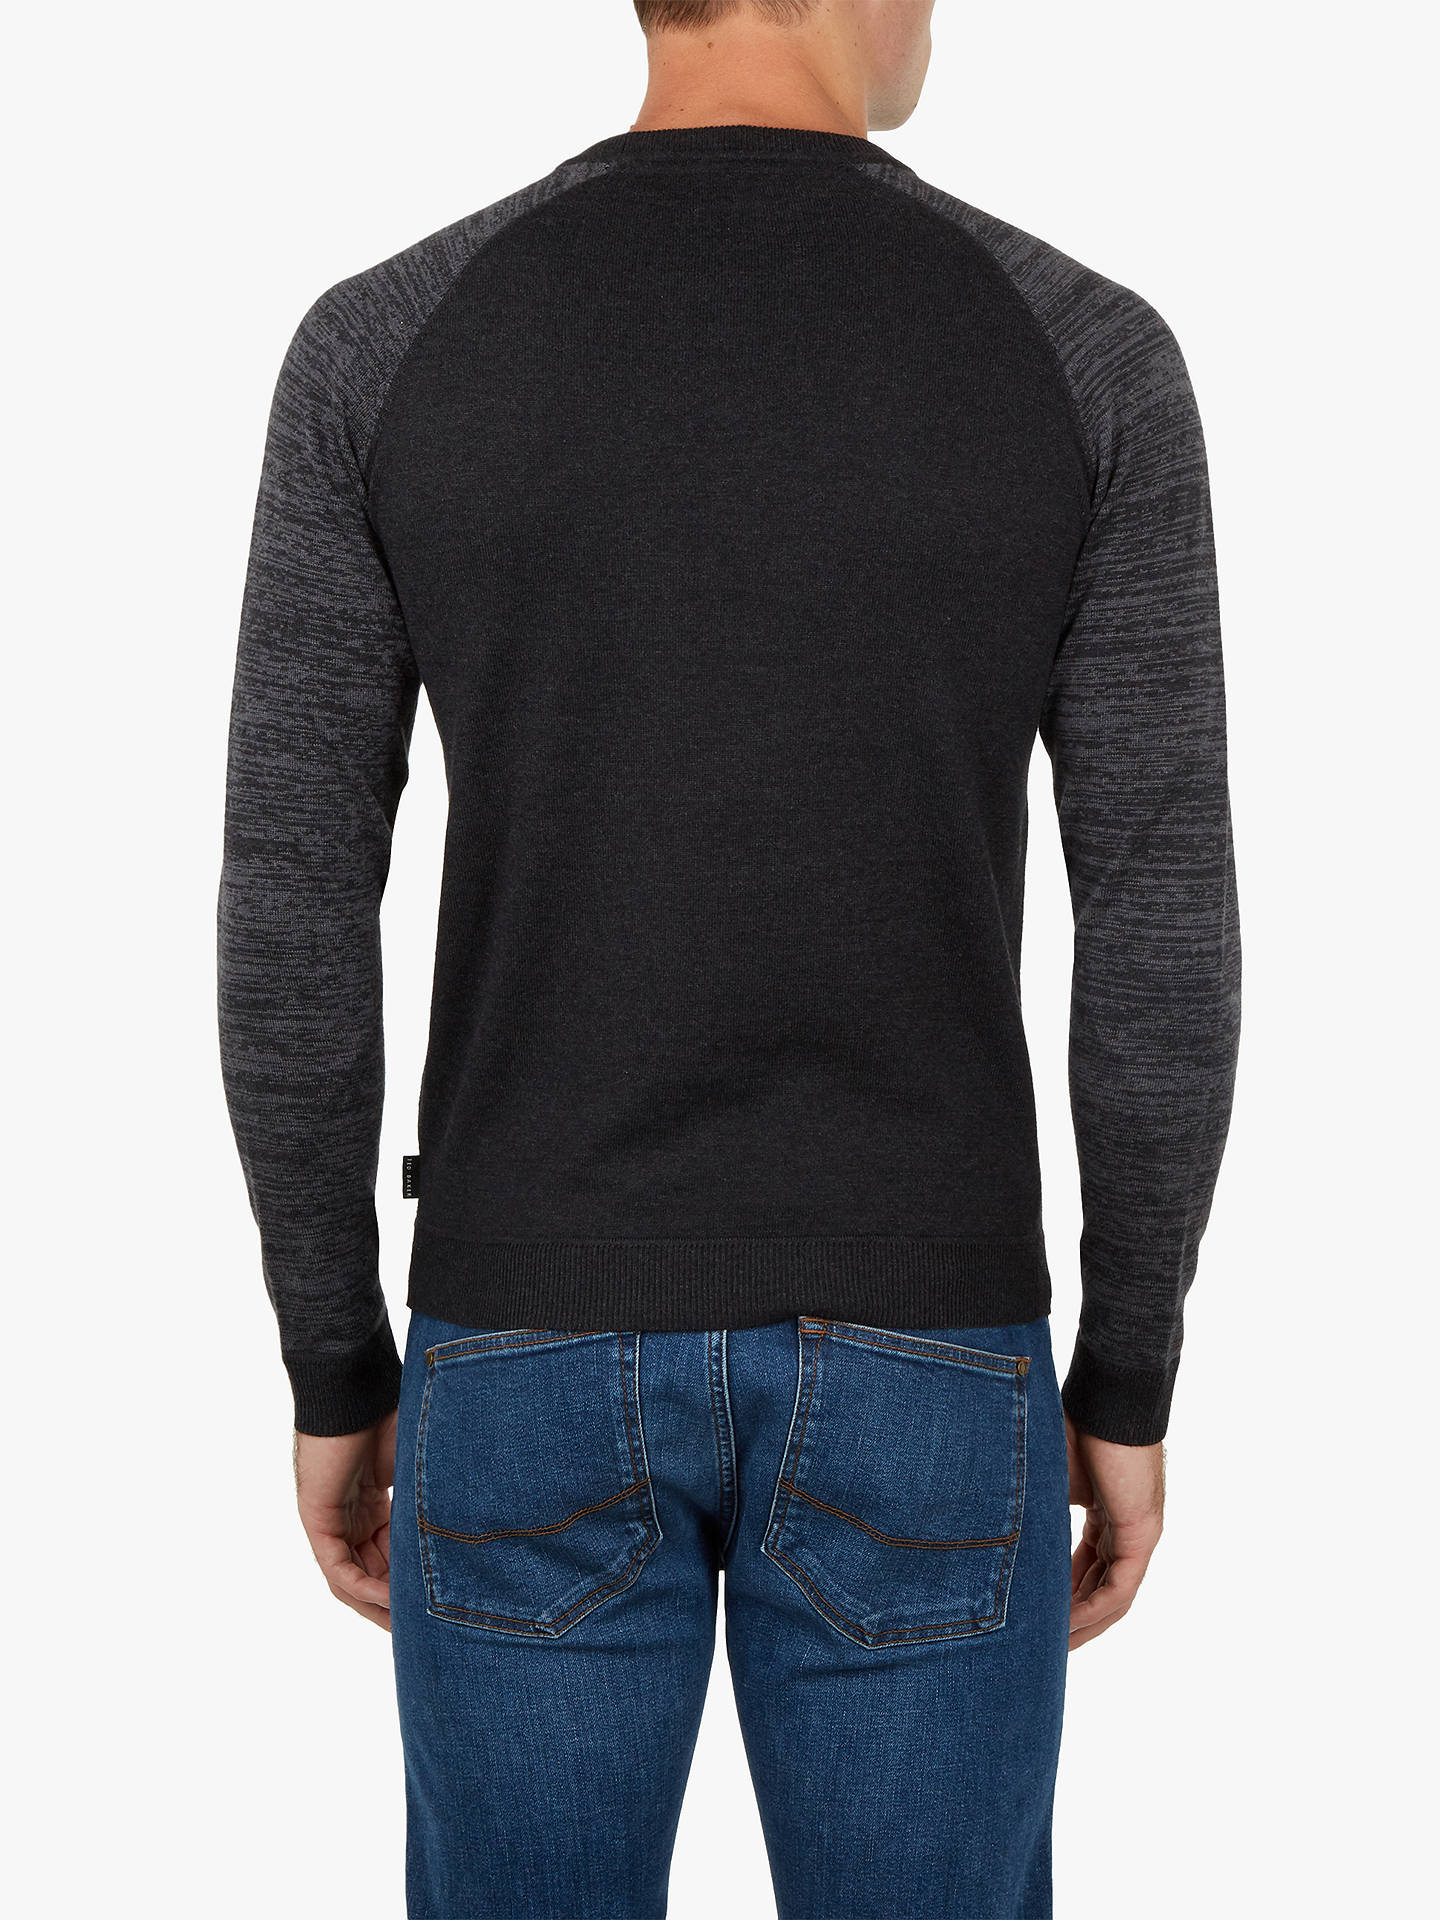 BuyTed Baker Cornfed Space Dye Crew Neck Top, Charcoal Grey, XXXL Online at johnlewis.com